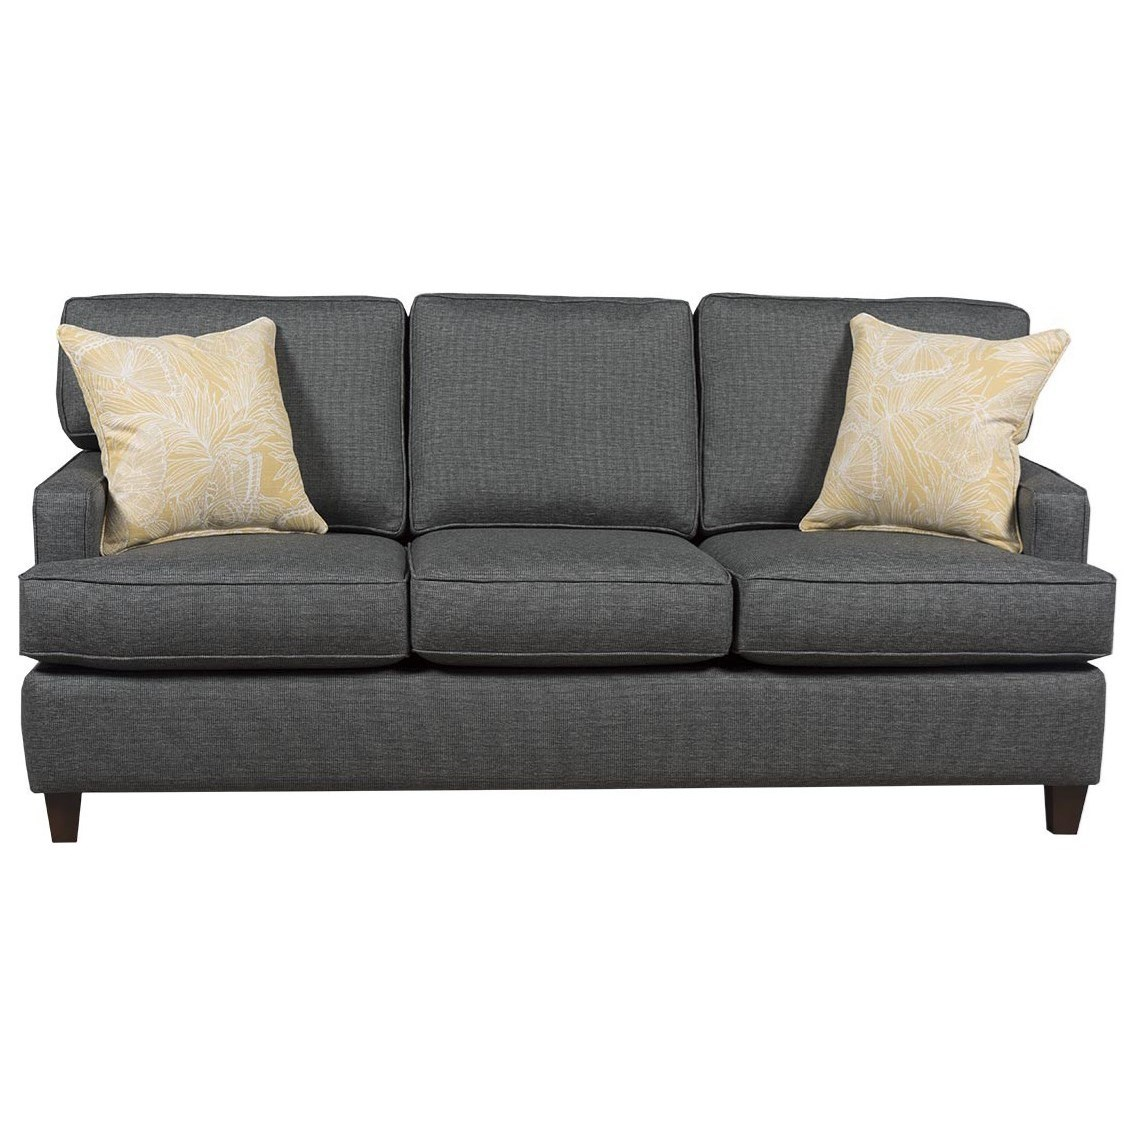 162 Sofa by Capris Furniture at Esprit Decor Home Furnishings